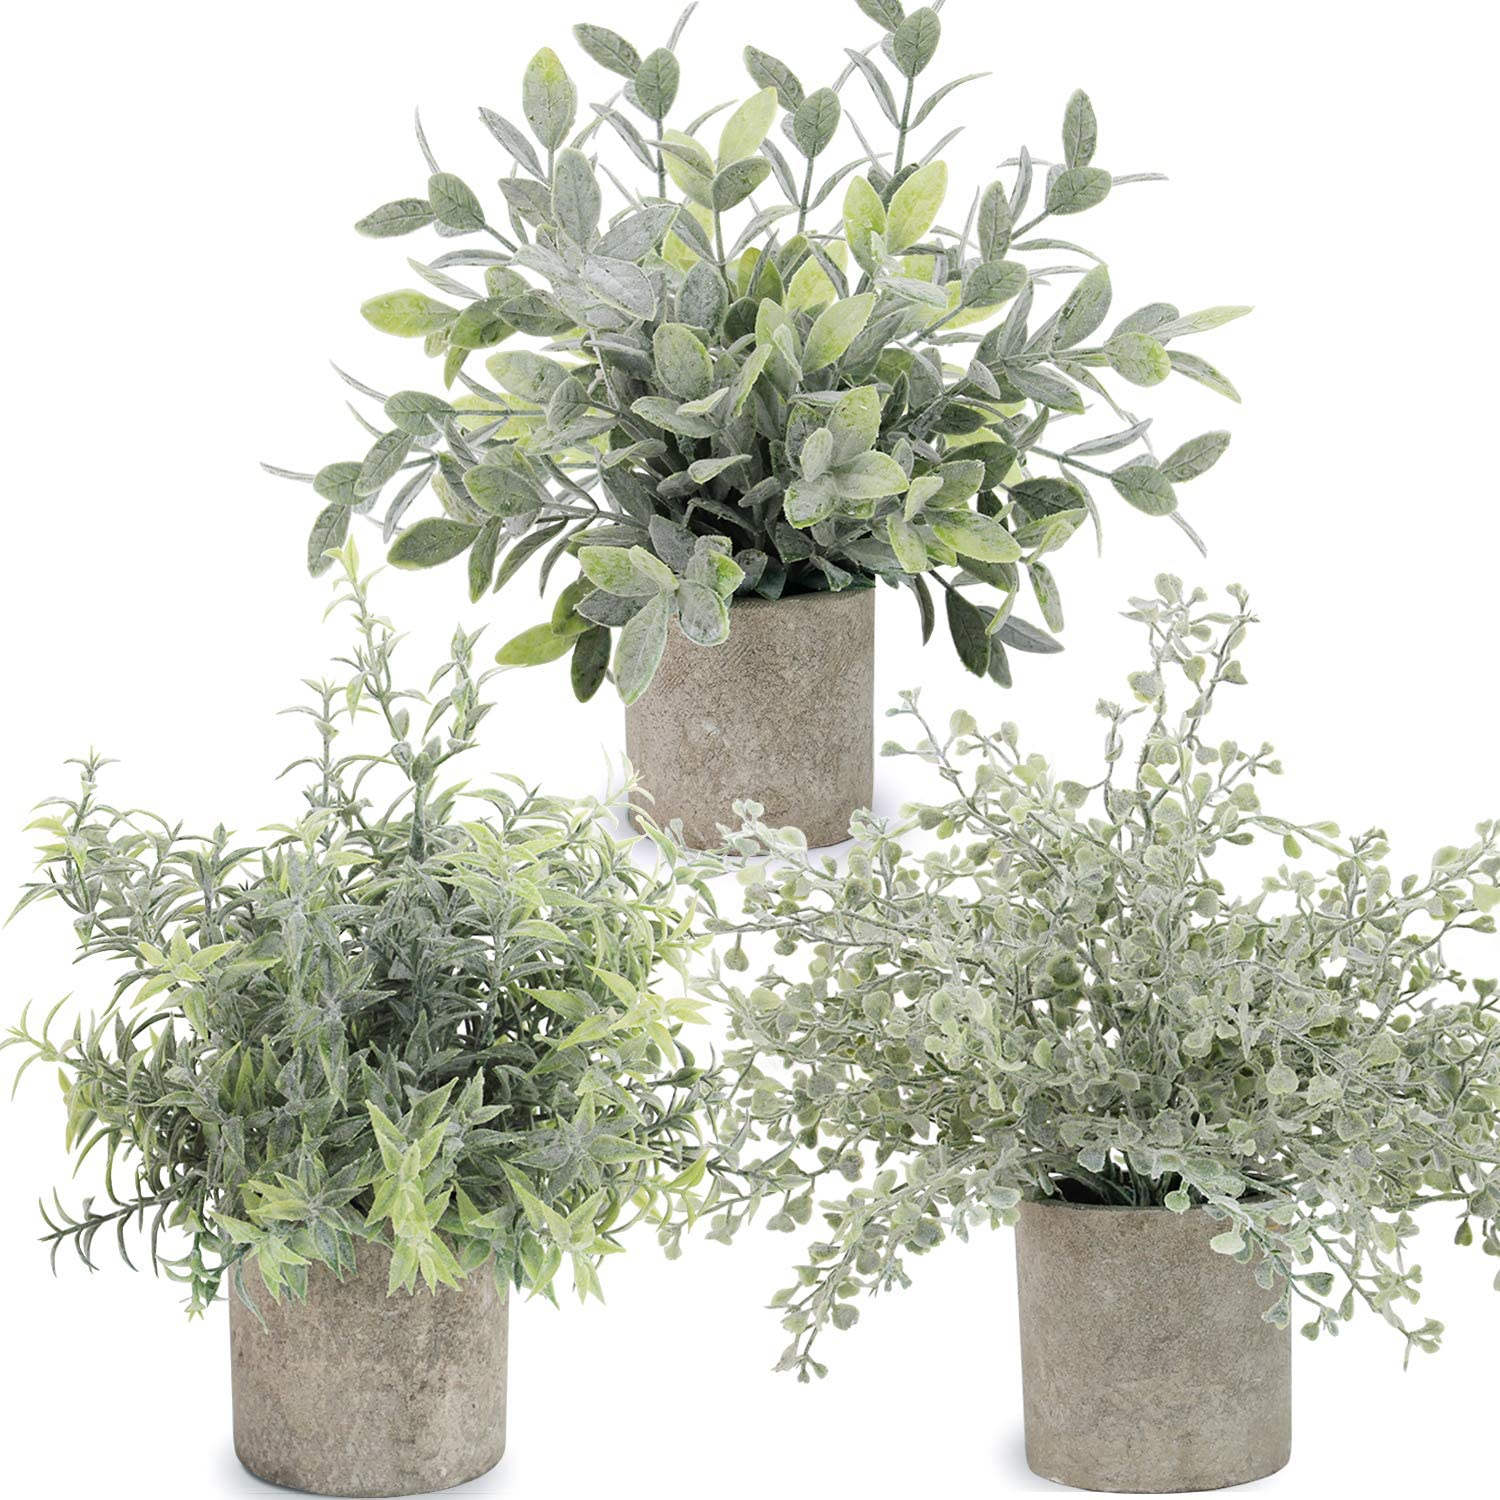 C APPOK Artificial Potted Plants Mini Fake Eucalyptus Plant, Small Plastic Green Plant with Pot, Faux Leaf Rosemary Plants for Shelf, Home Decor, Indoor, Table Decoration - 3 Pack, Flocking Green